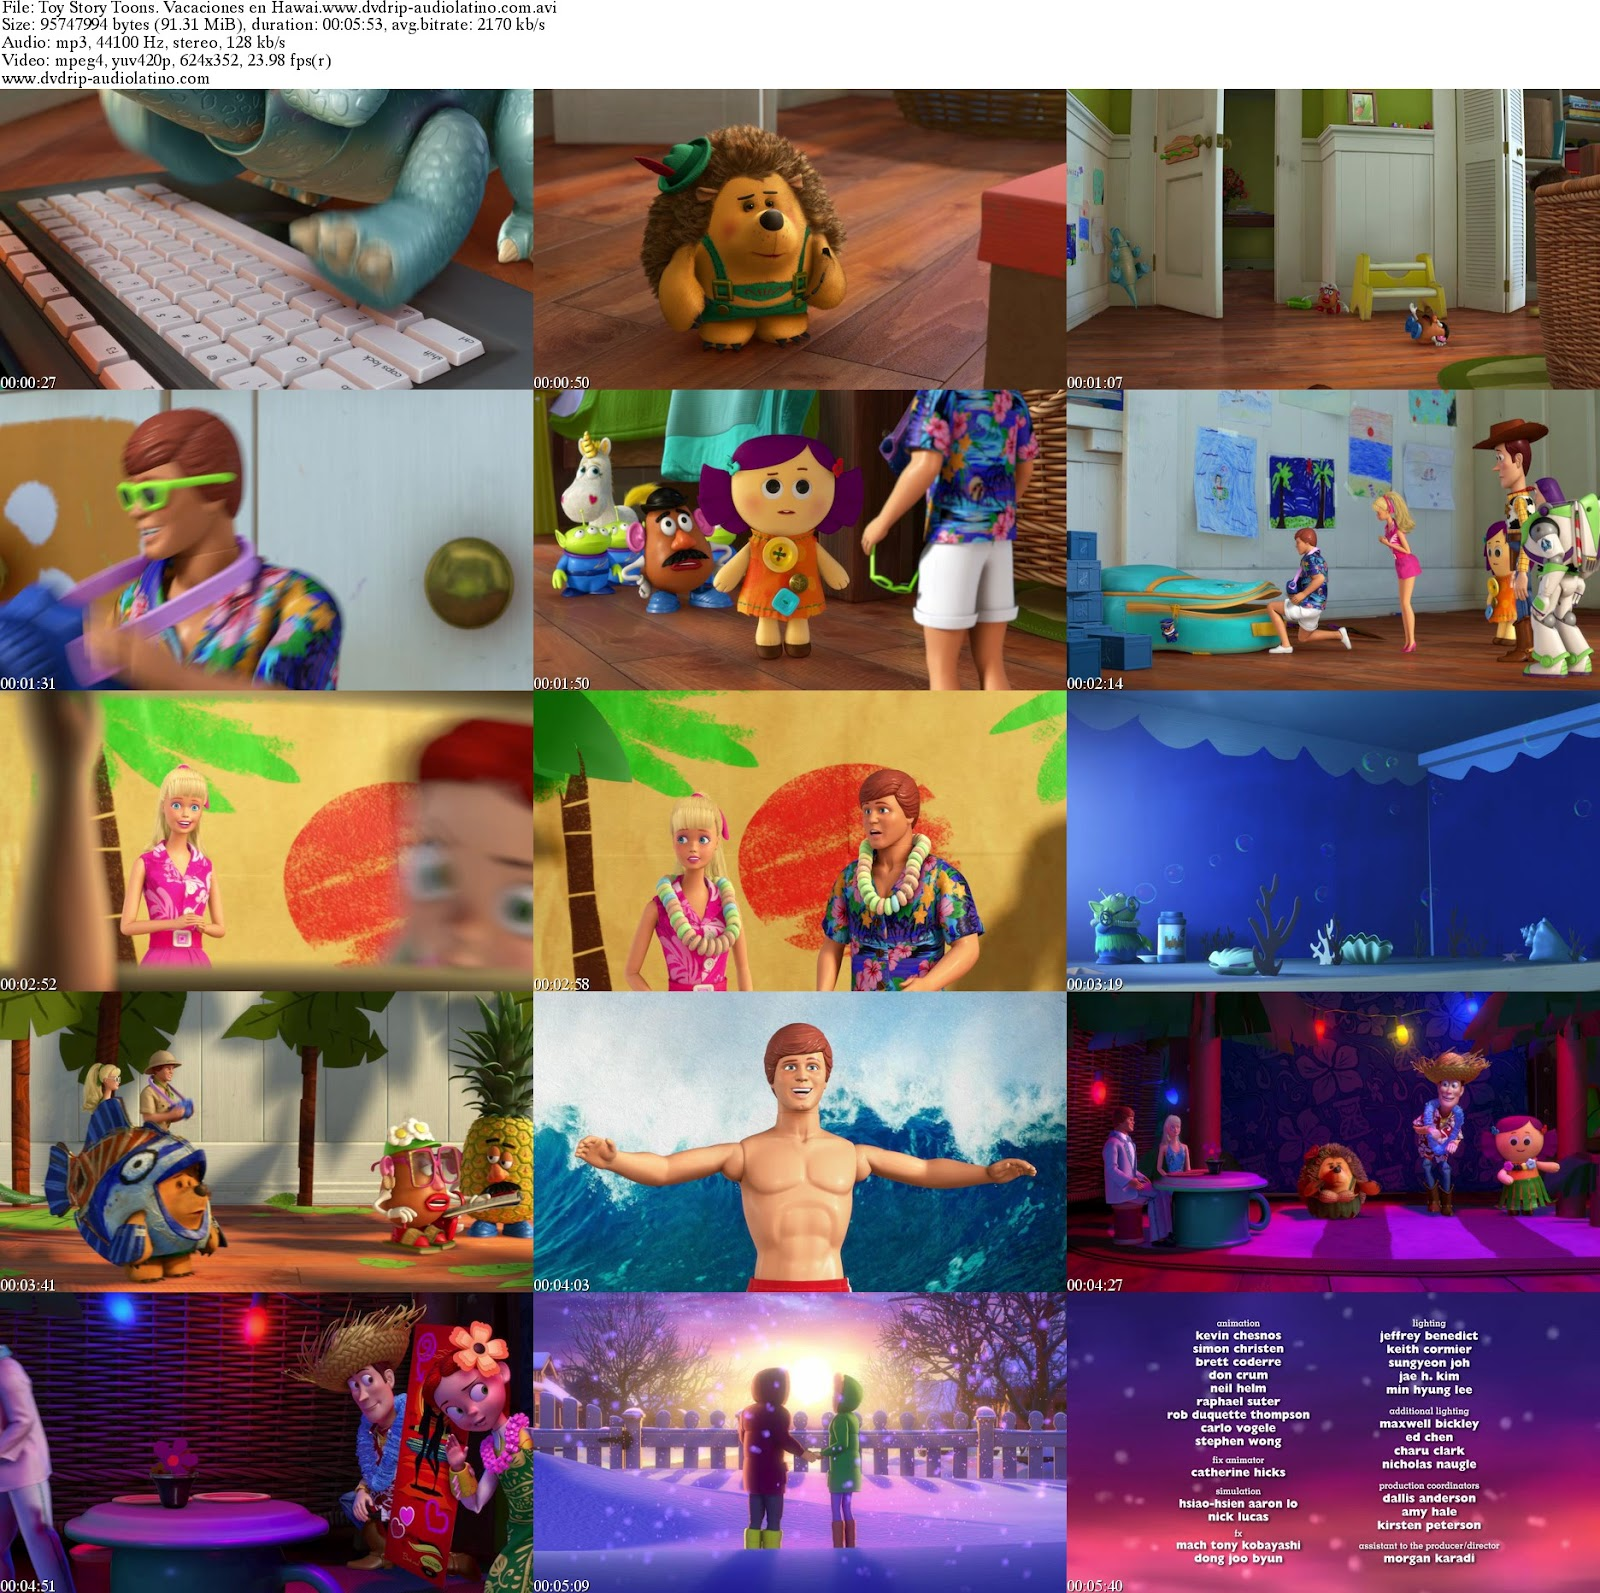 toy story toons  vacaciones en hawai 2011 brrip audio